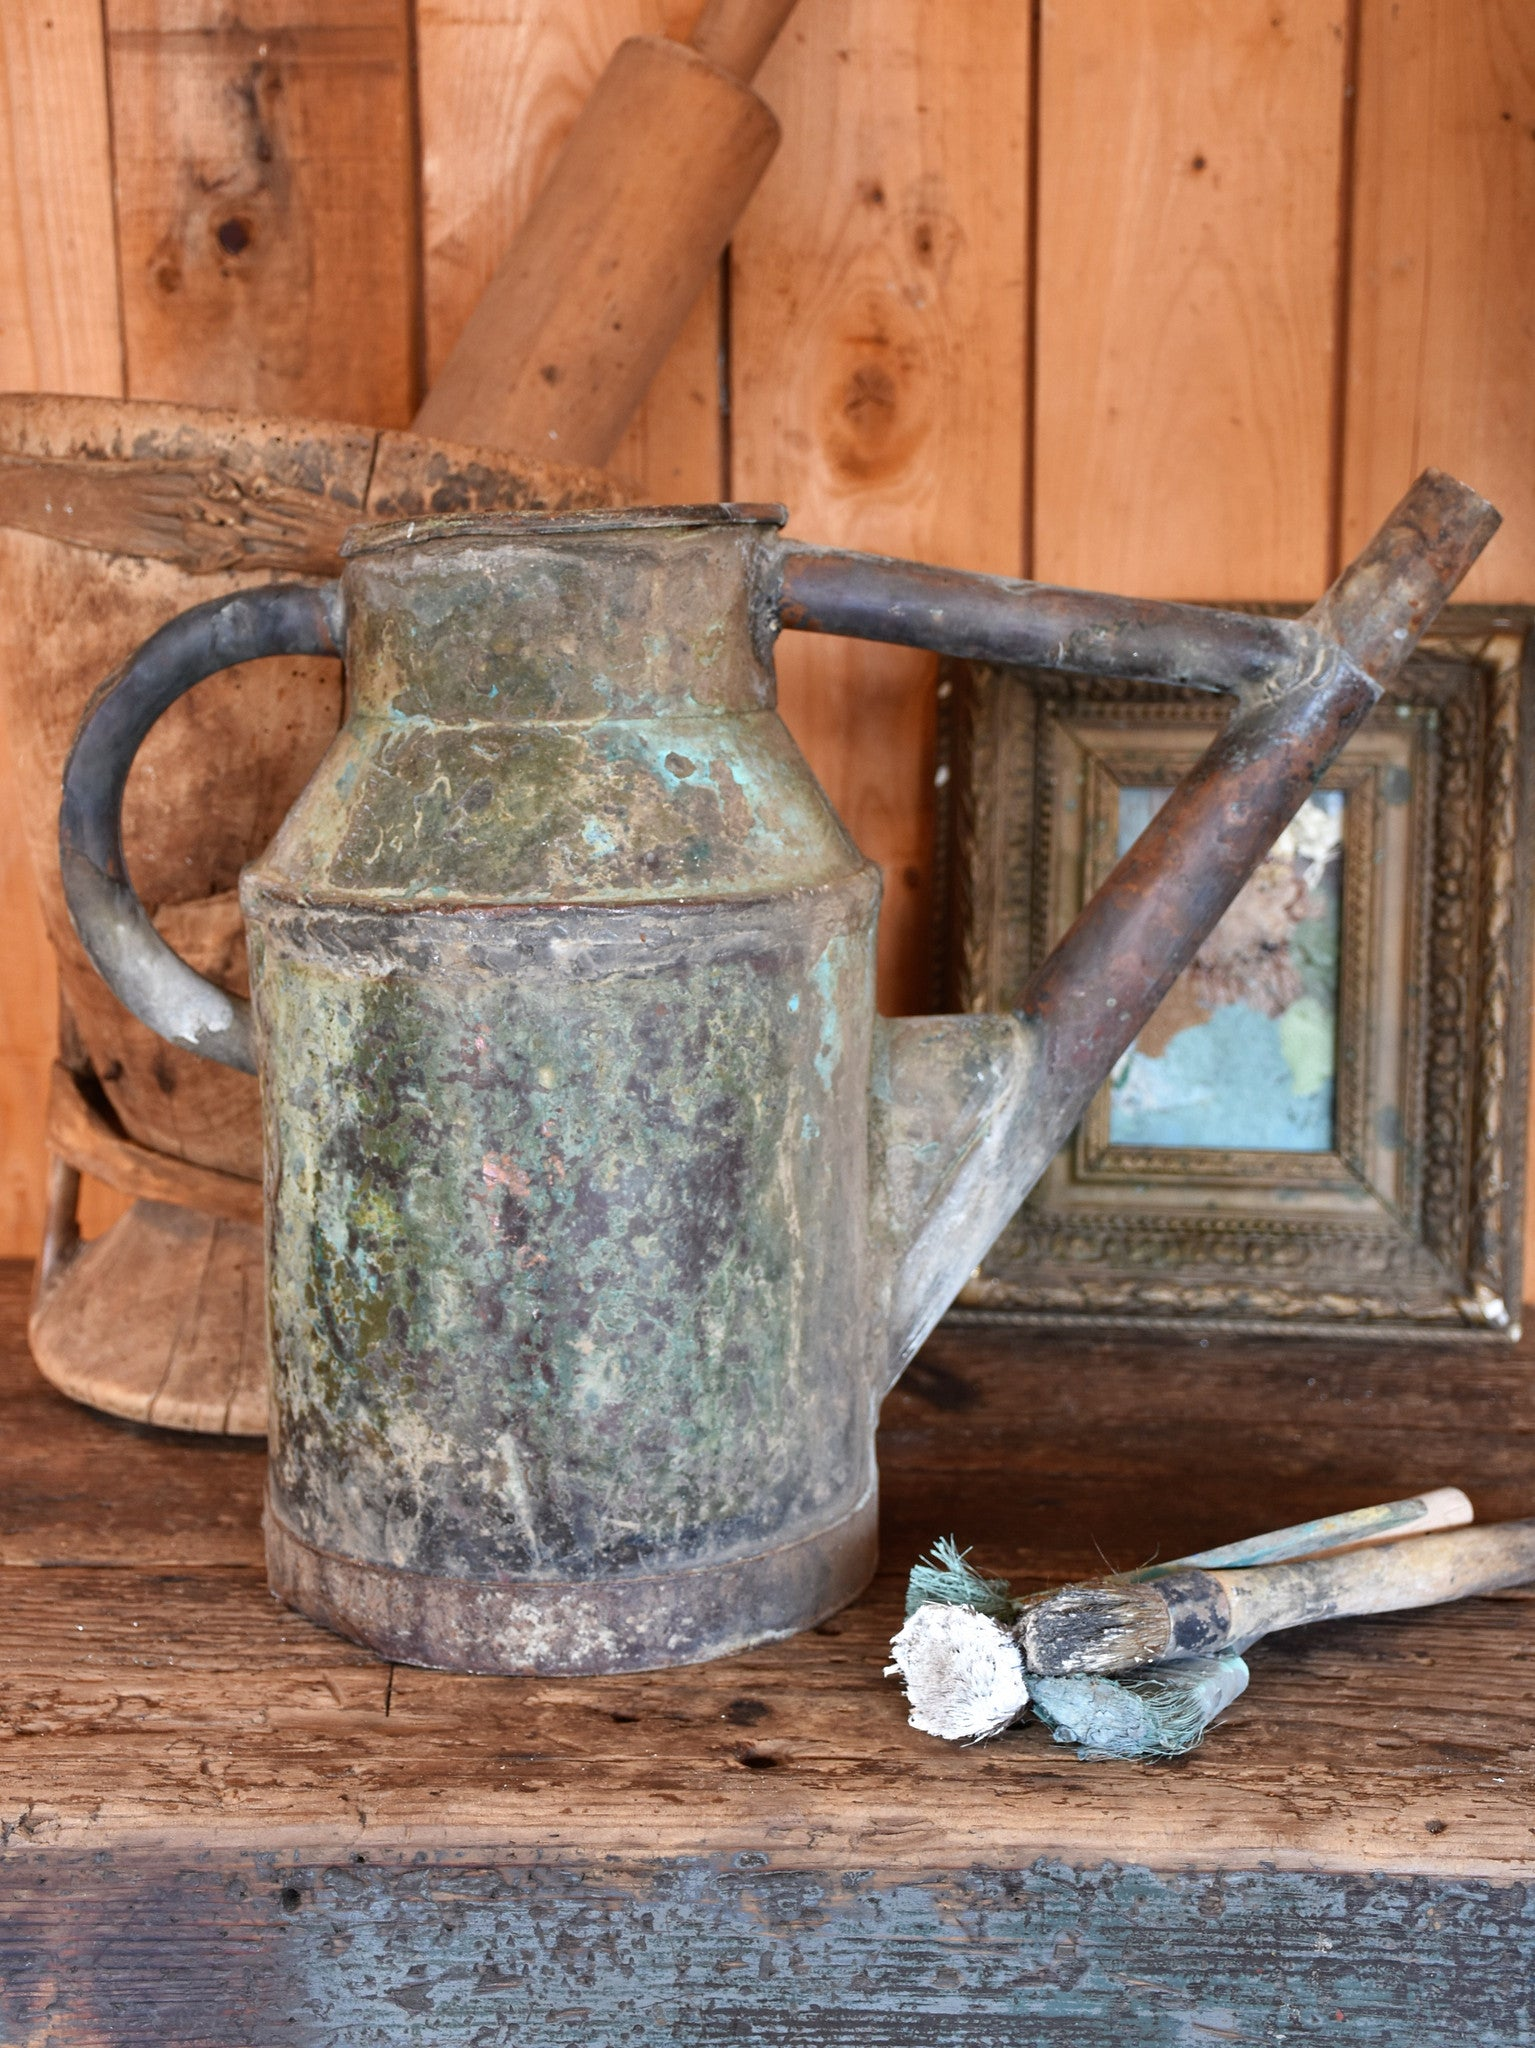 Late 19th century French watering can